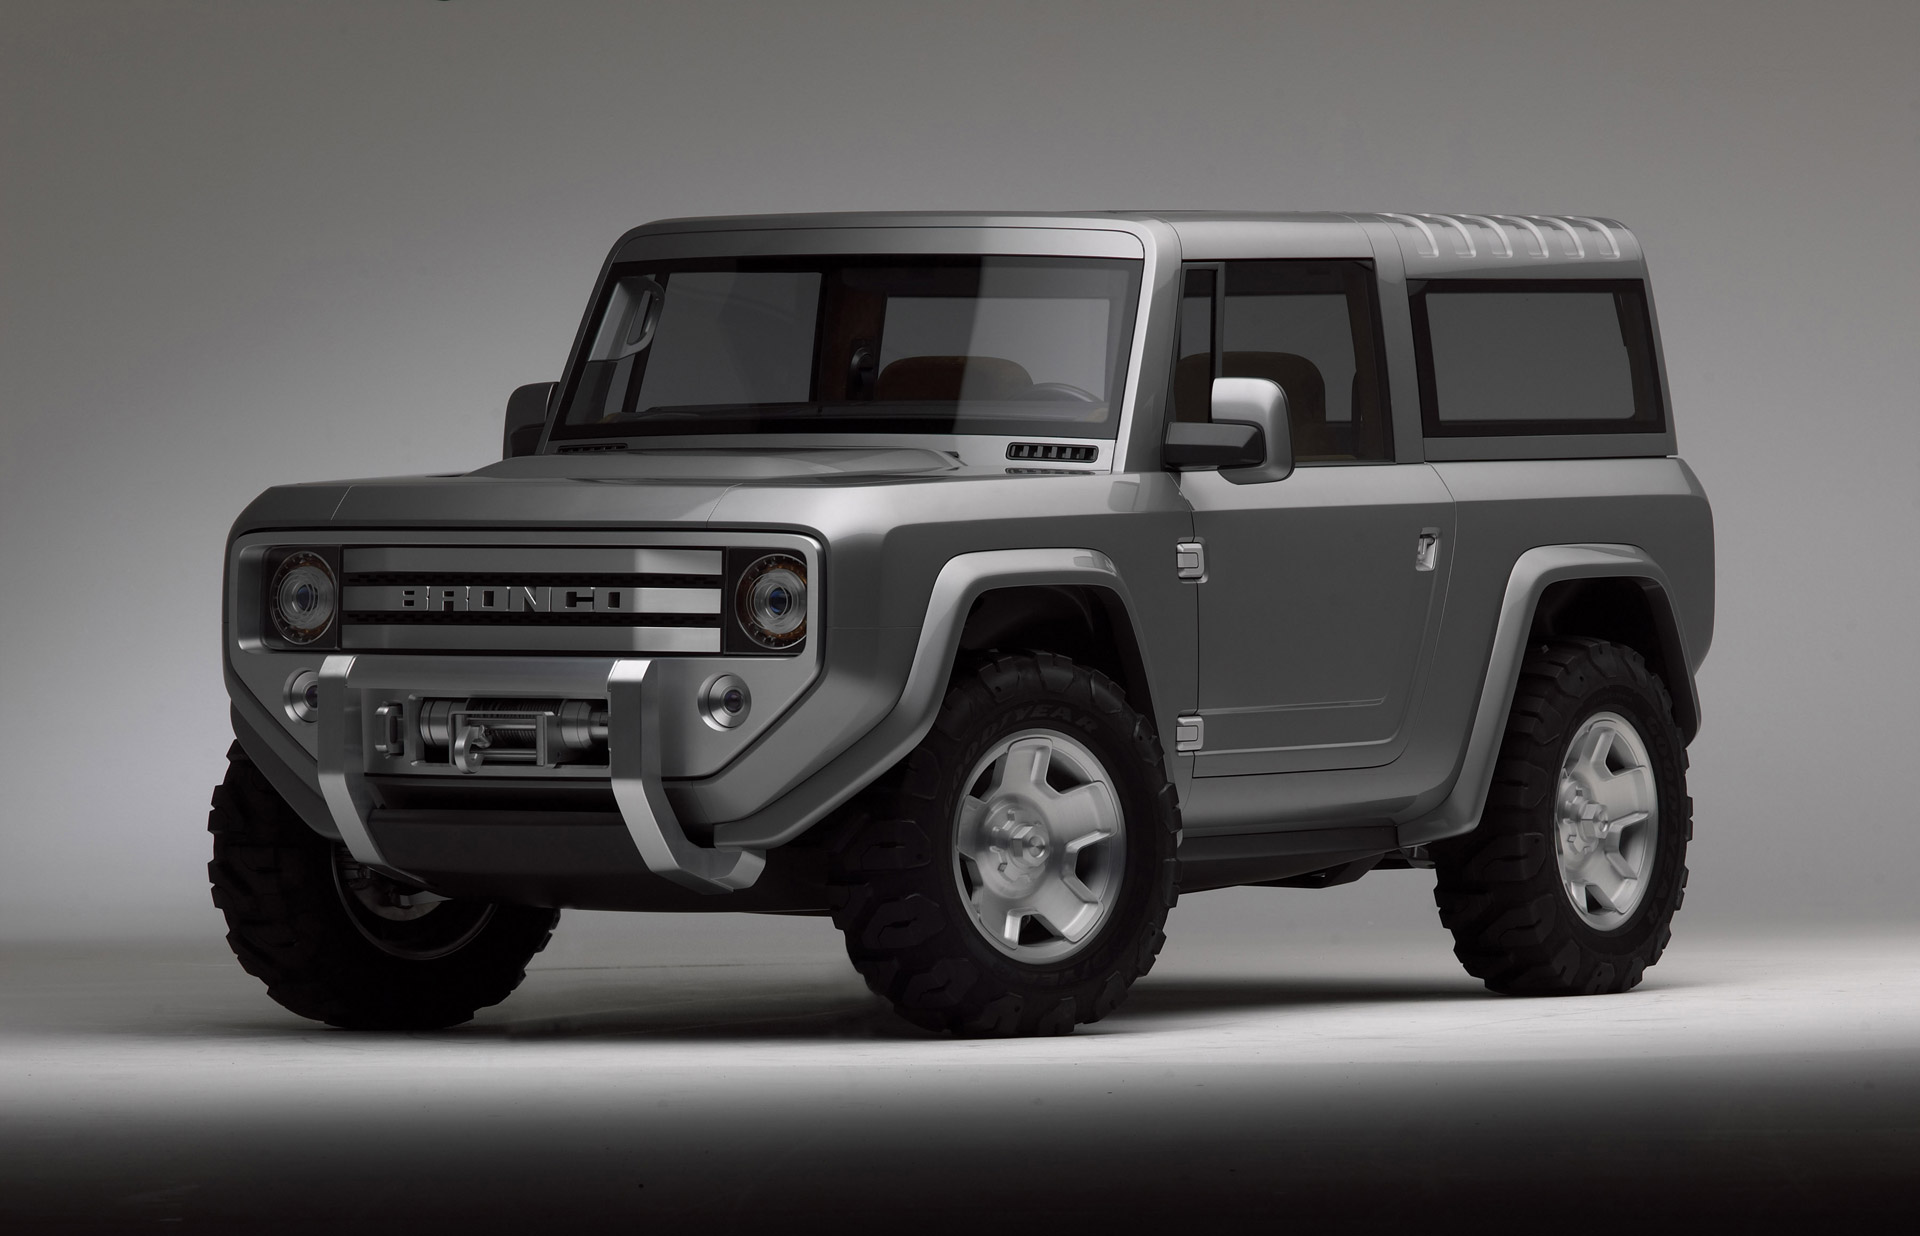 2016 Ford Bronco Price >> 2020 Ford Bronco Confirmed By Uaw Deal Ranger Pickup Timeline Set